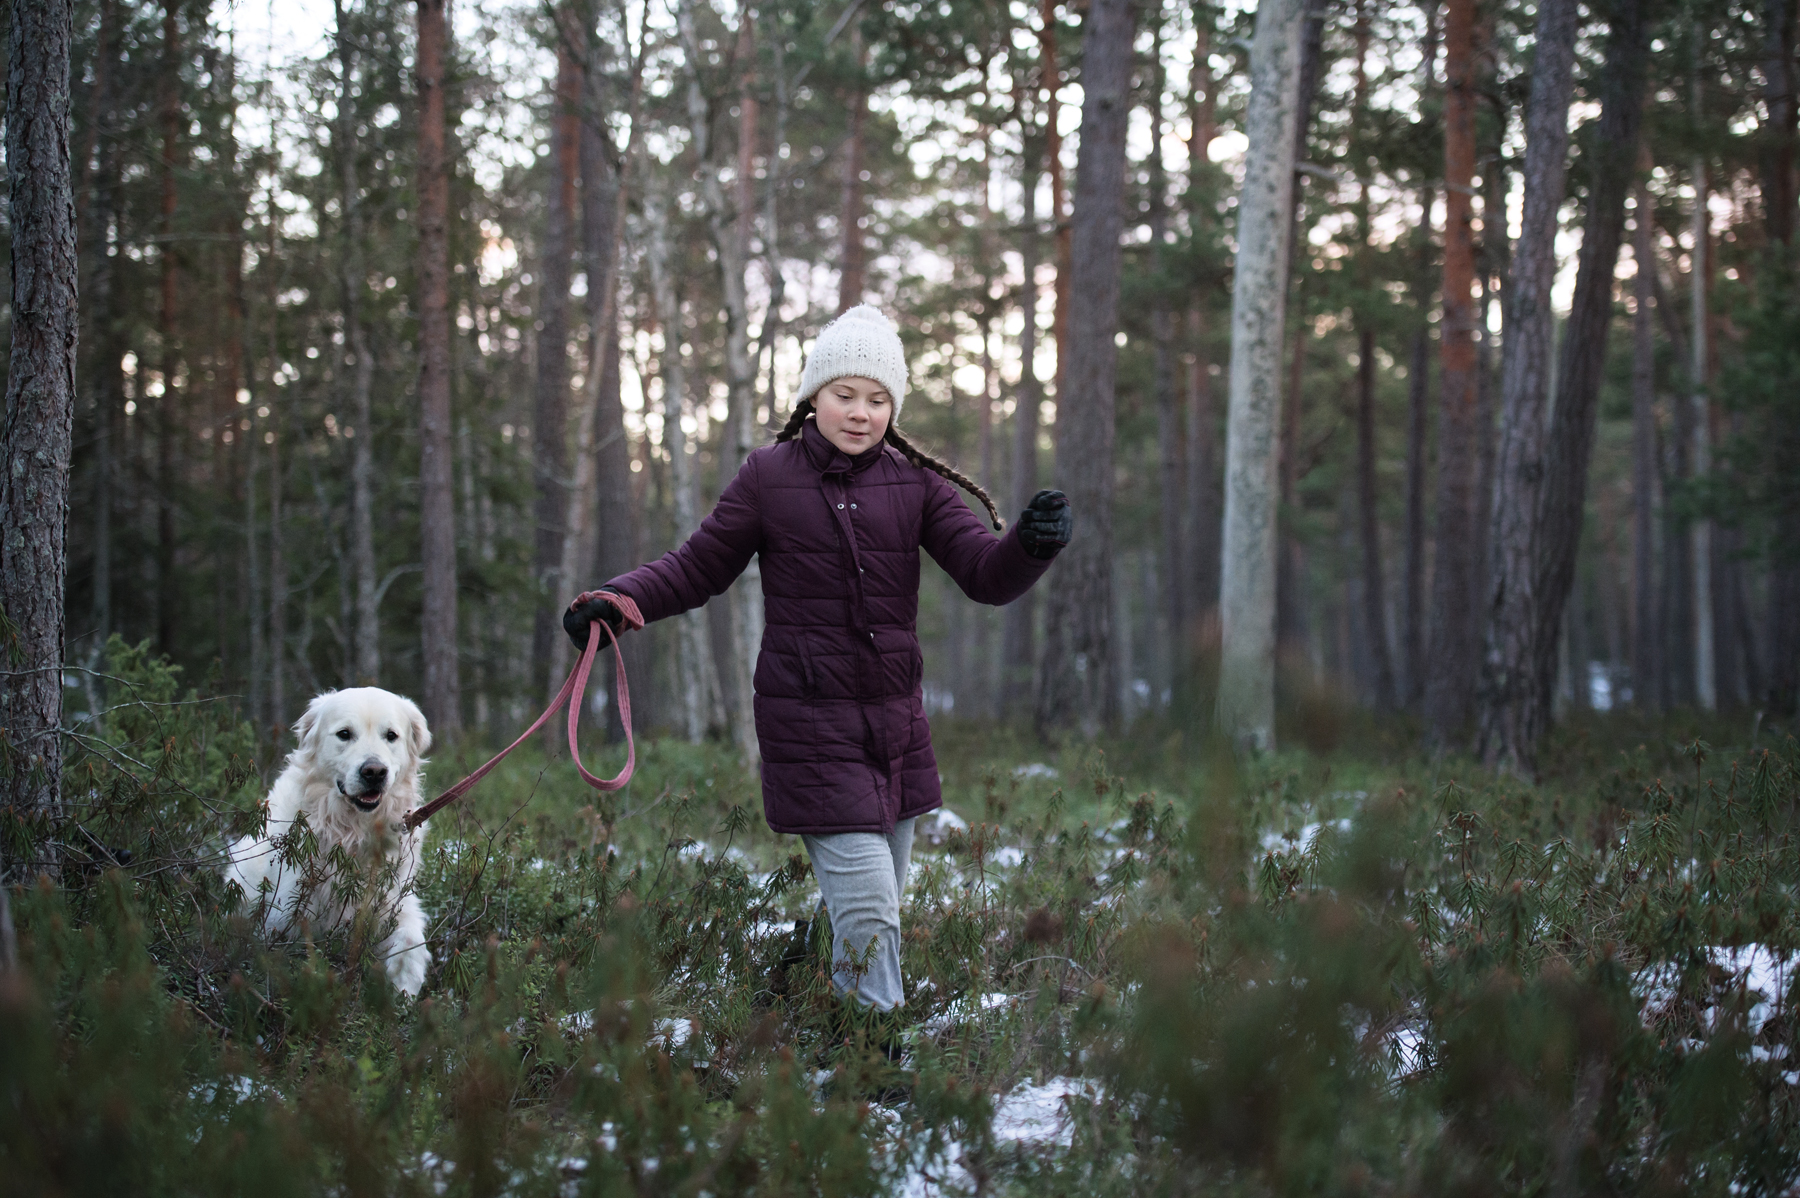 Teen Climate Activist Greta Thunberg Has Been Nominated for the Nobel Peace Prize